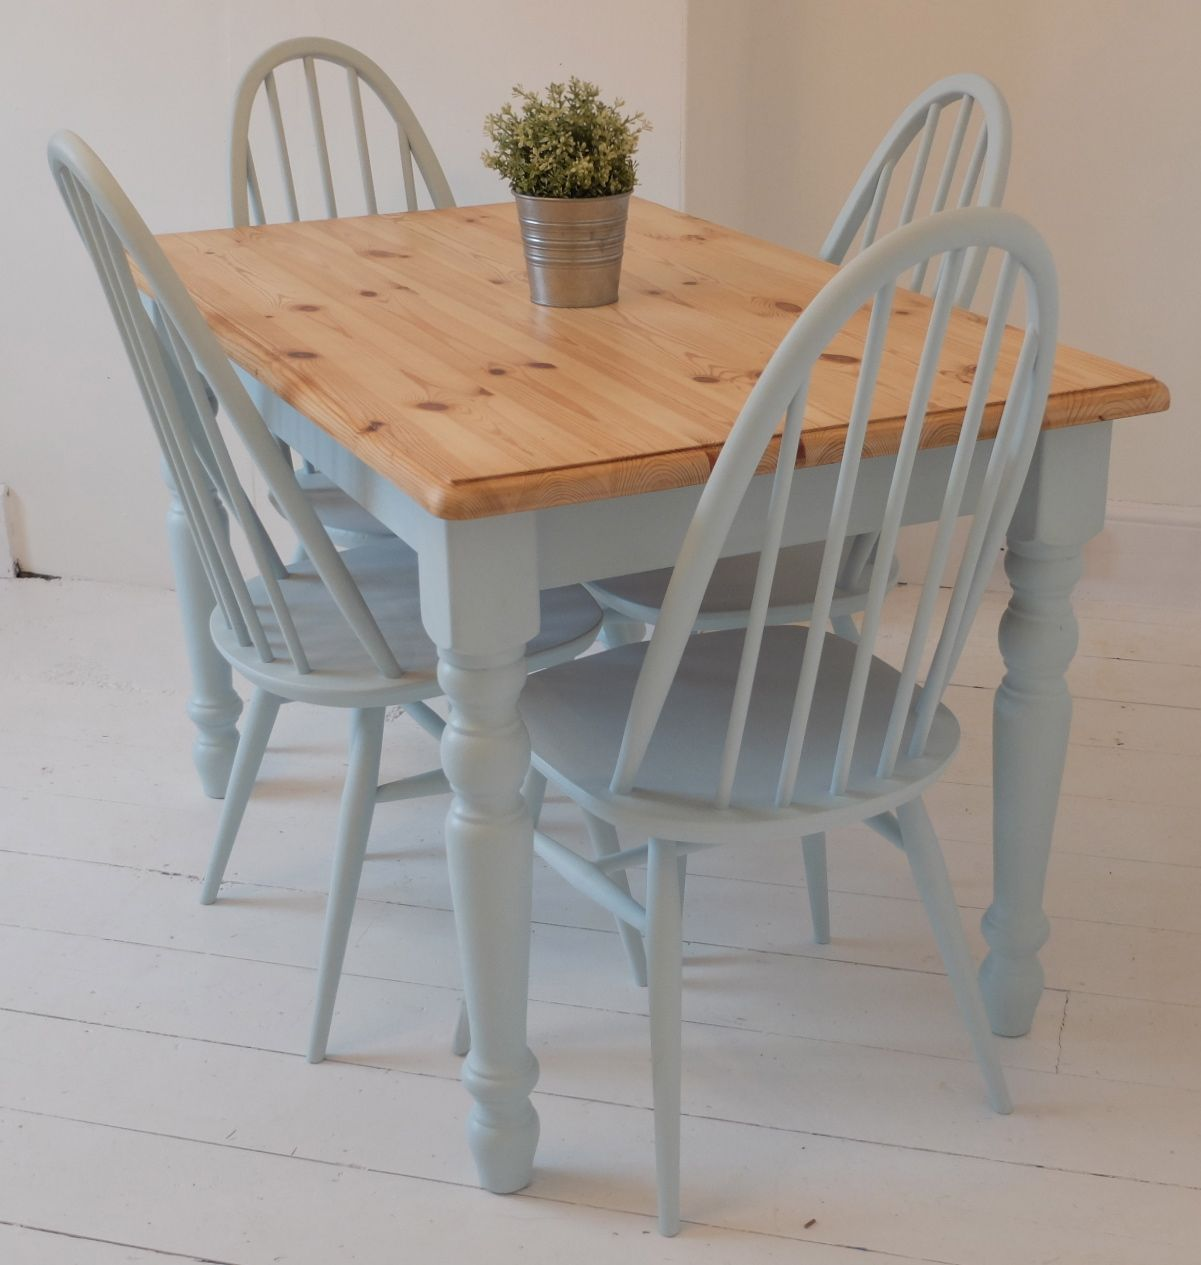 Rustoleum Driftwood Stain Here Is A Wonderful Painted Legged Solid Pine Table Painted In